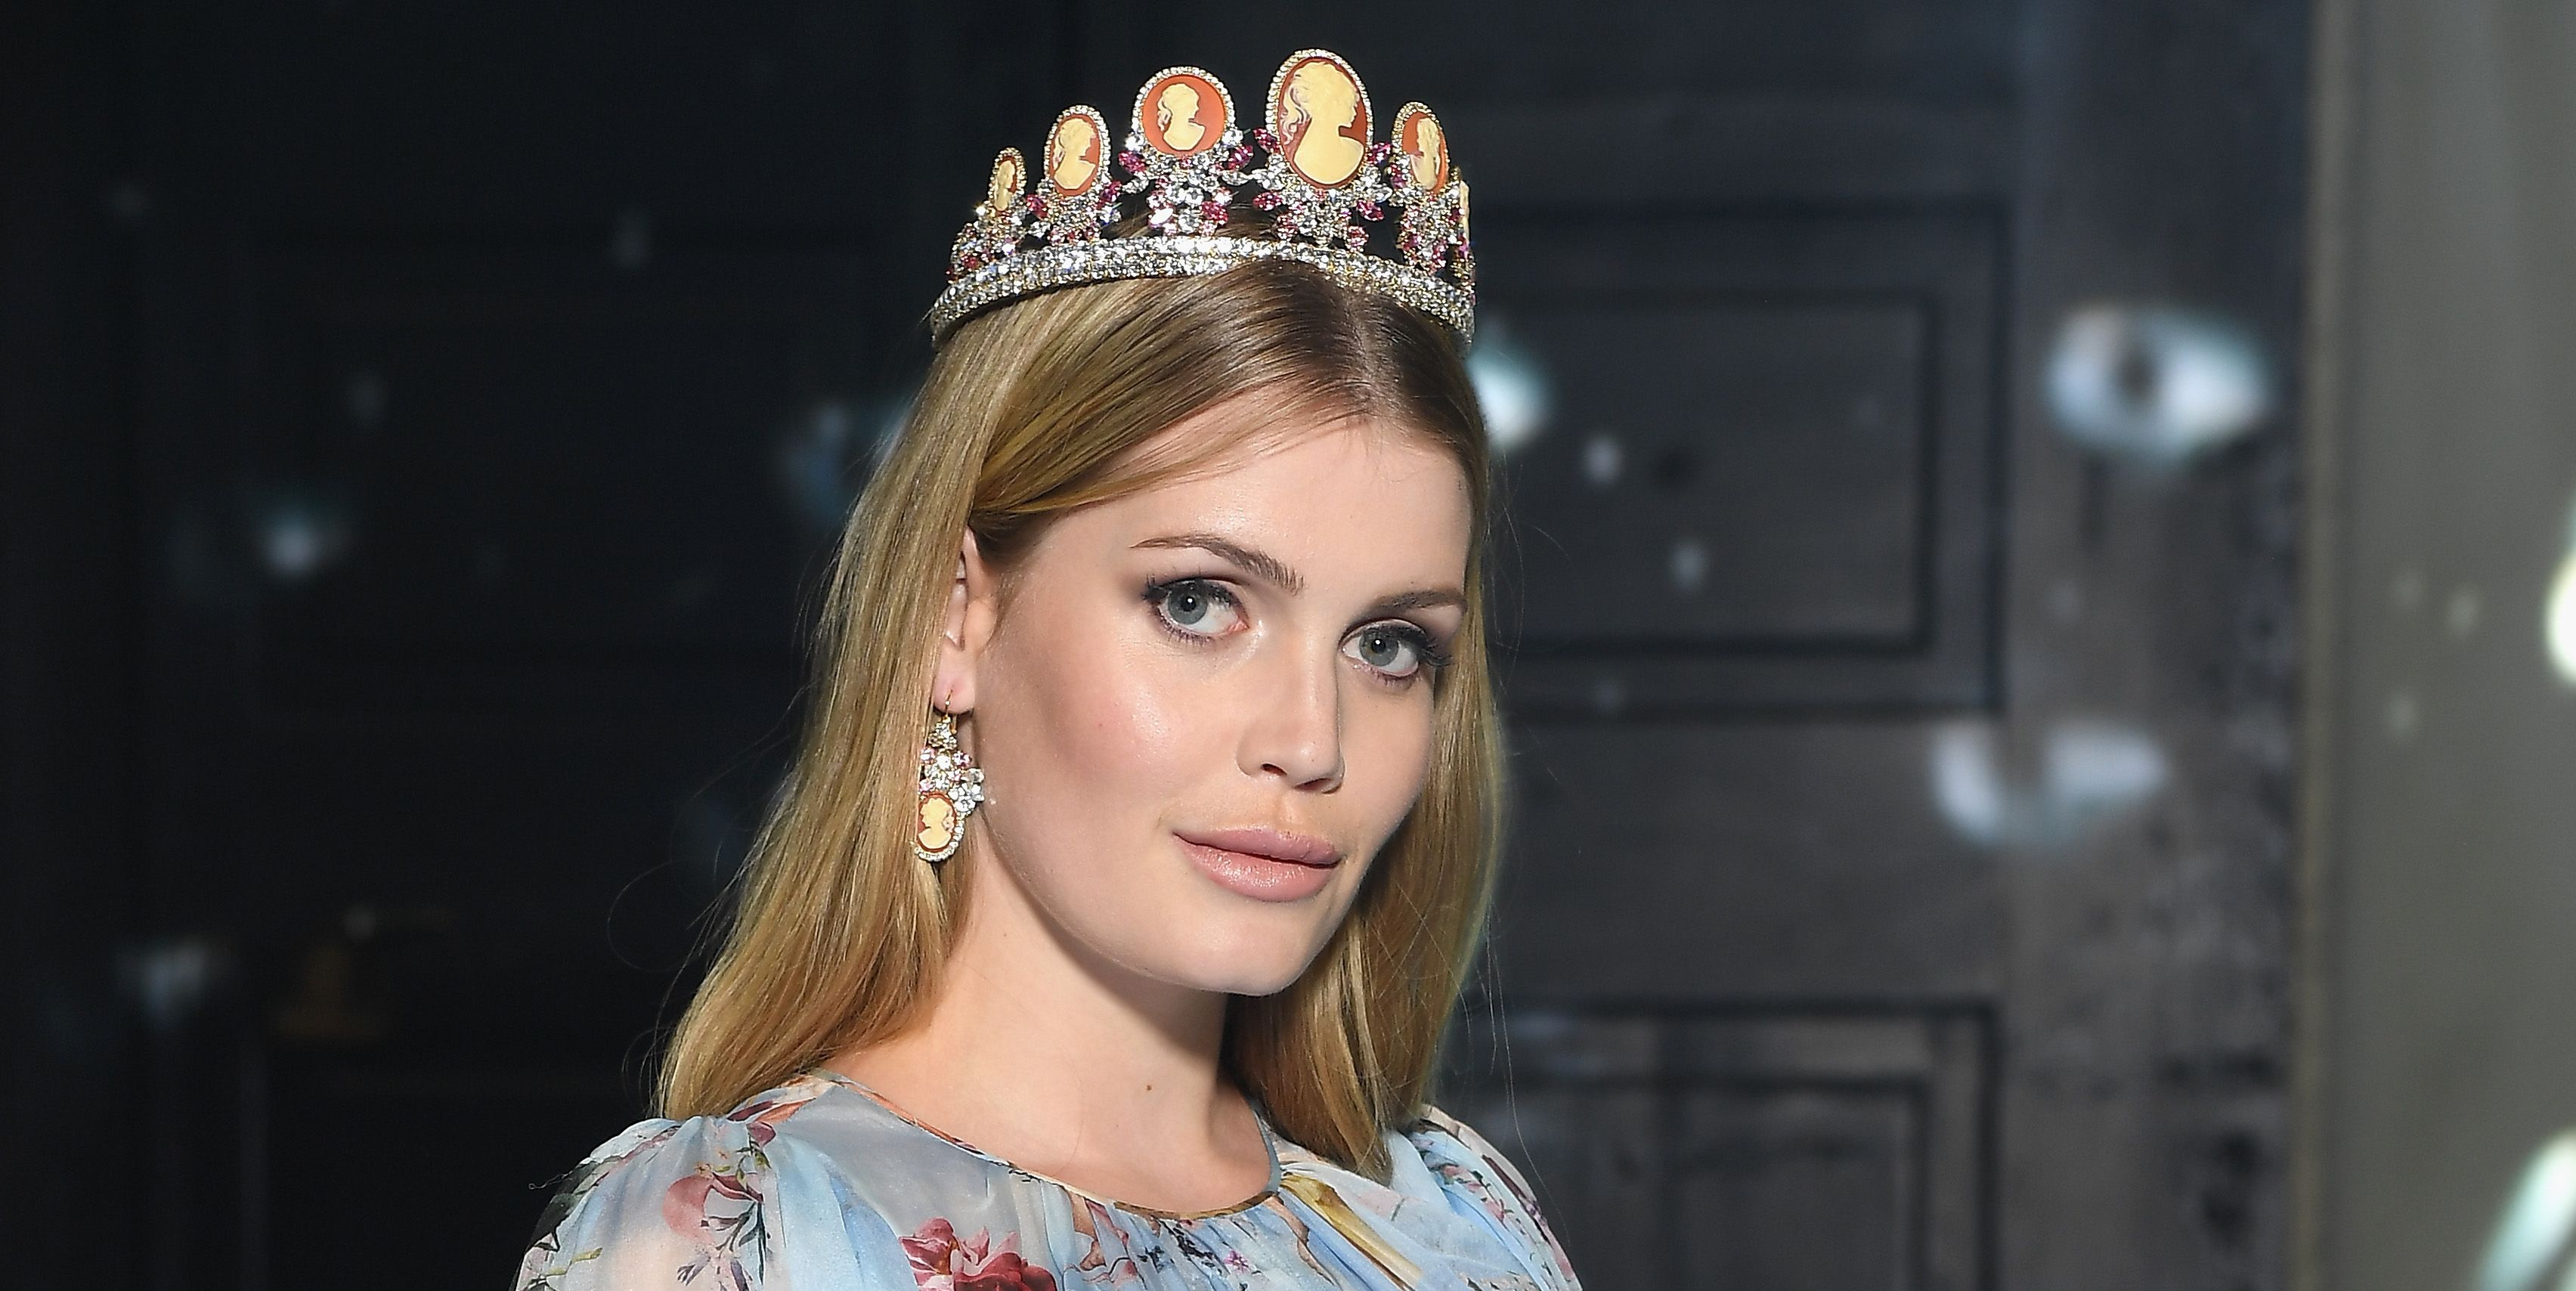 Princess Diana S Niece Lady Kitty Spencer Just Walked The